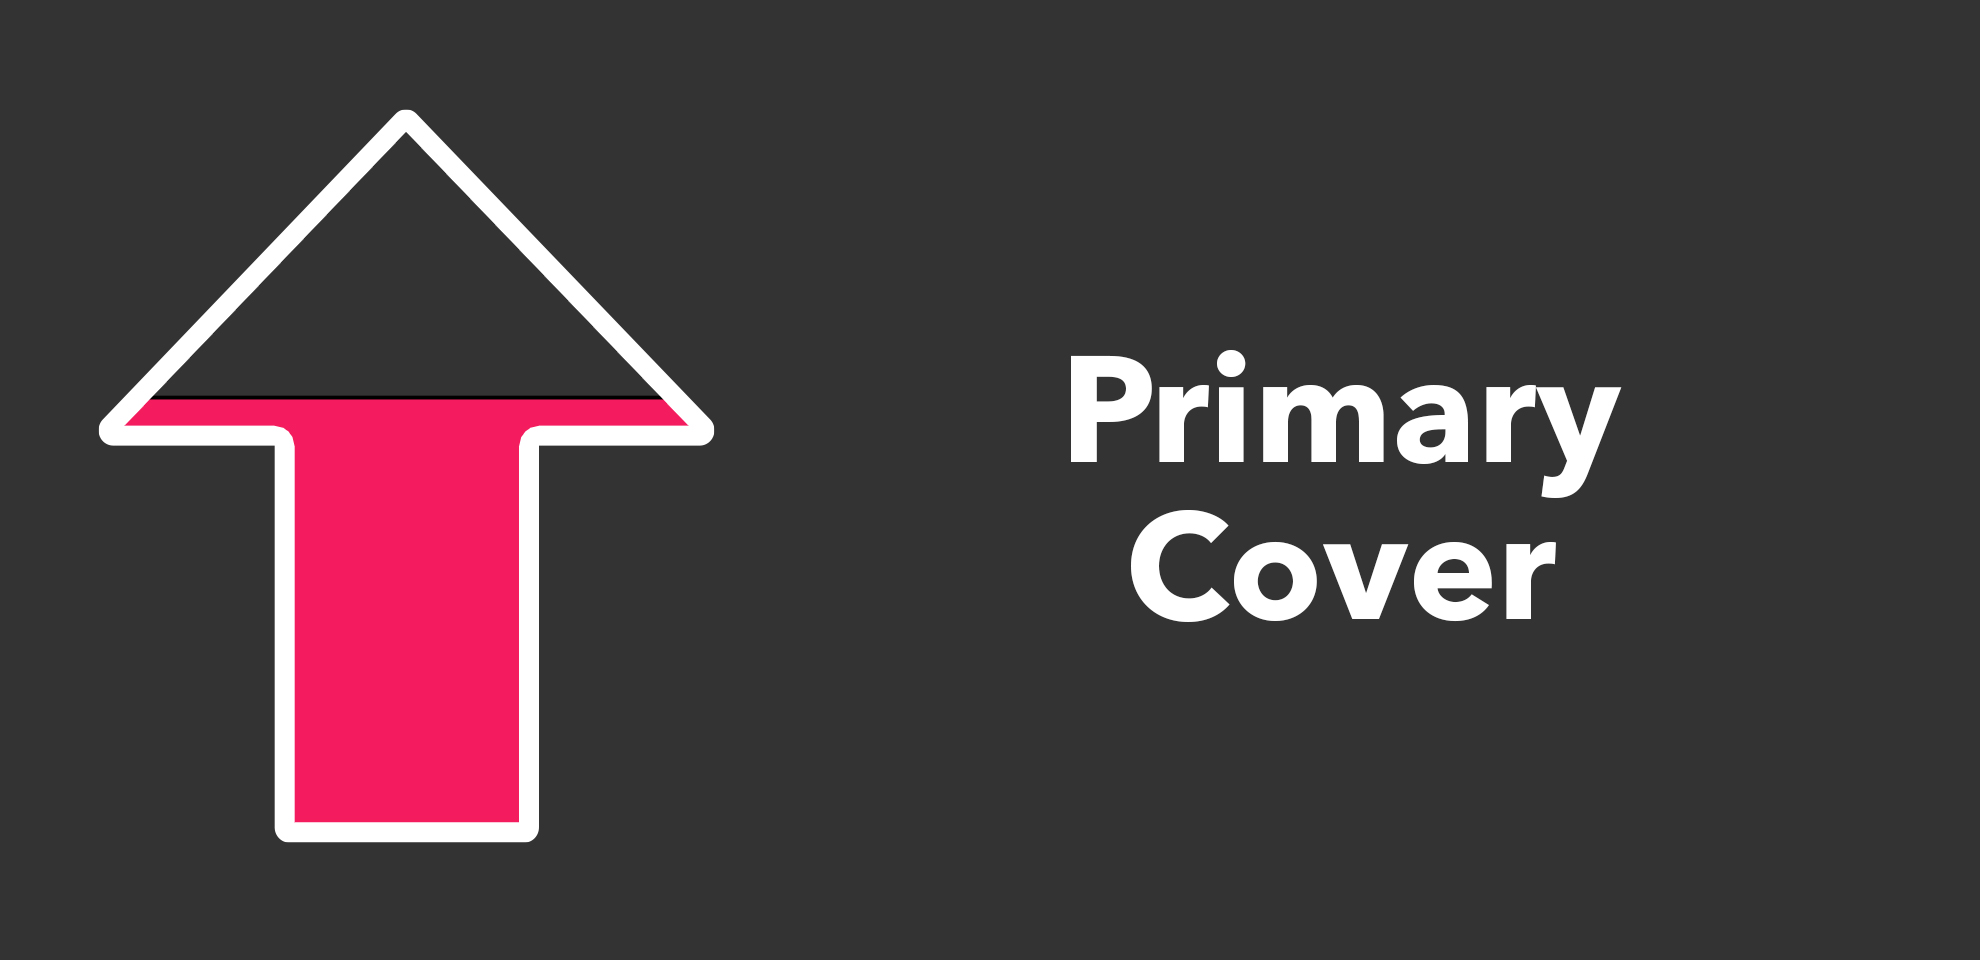 Primary income protection cover